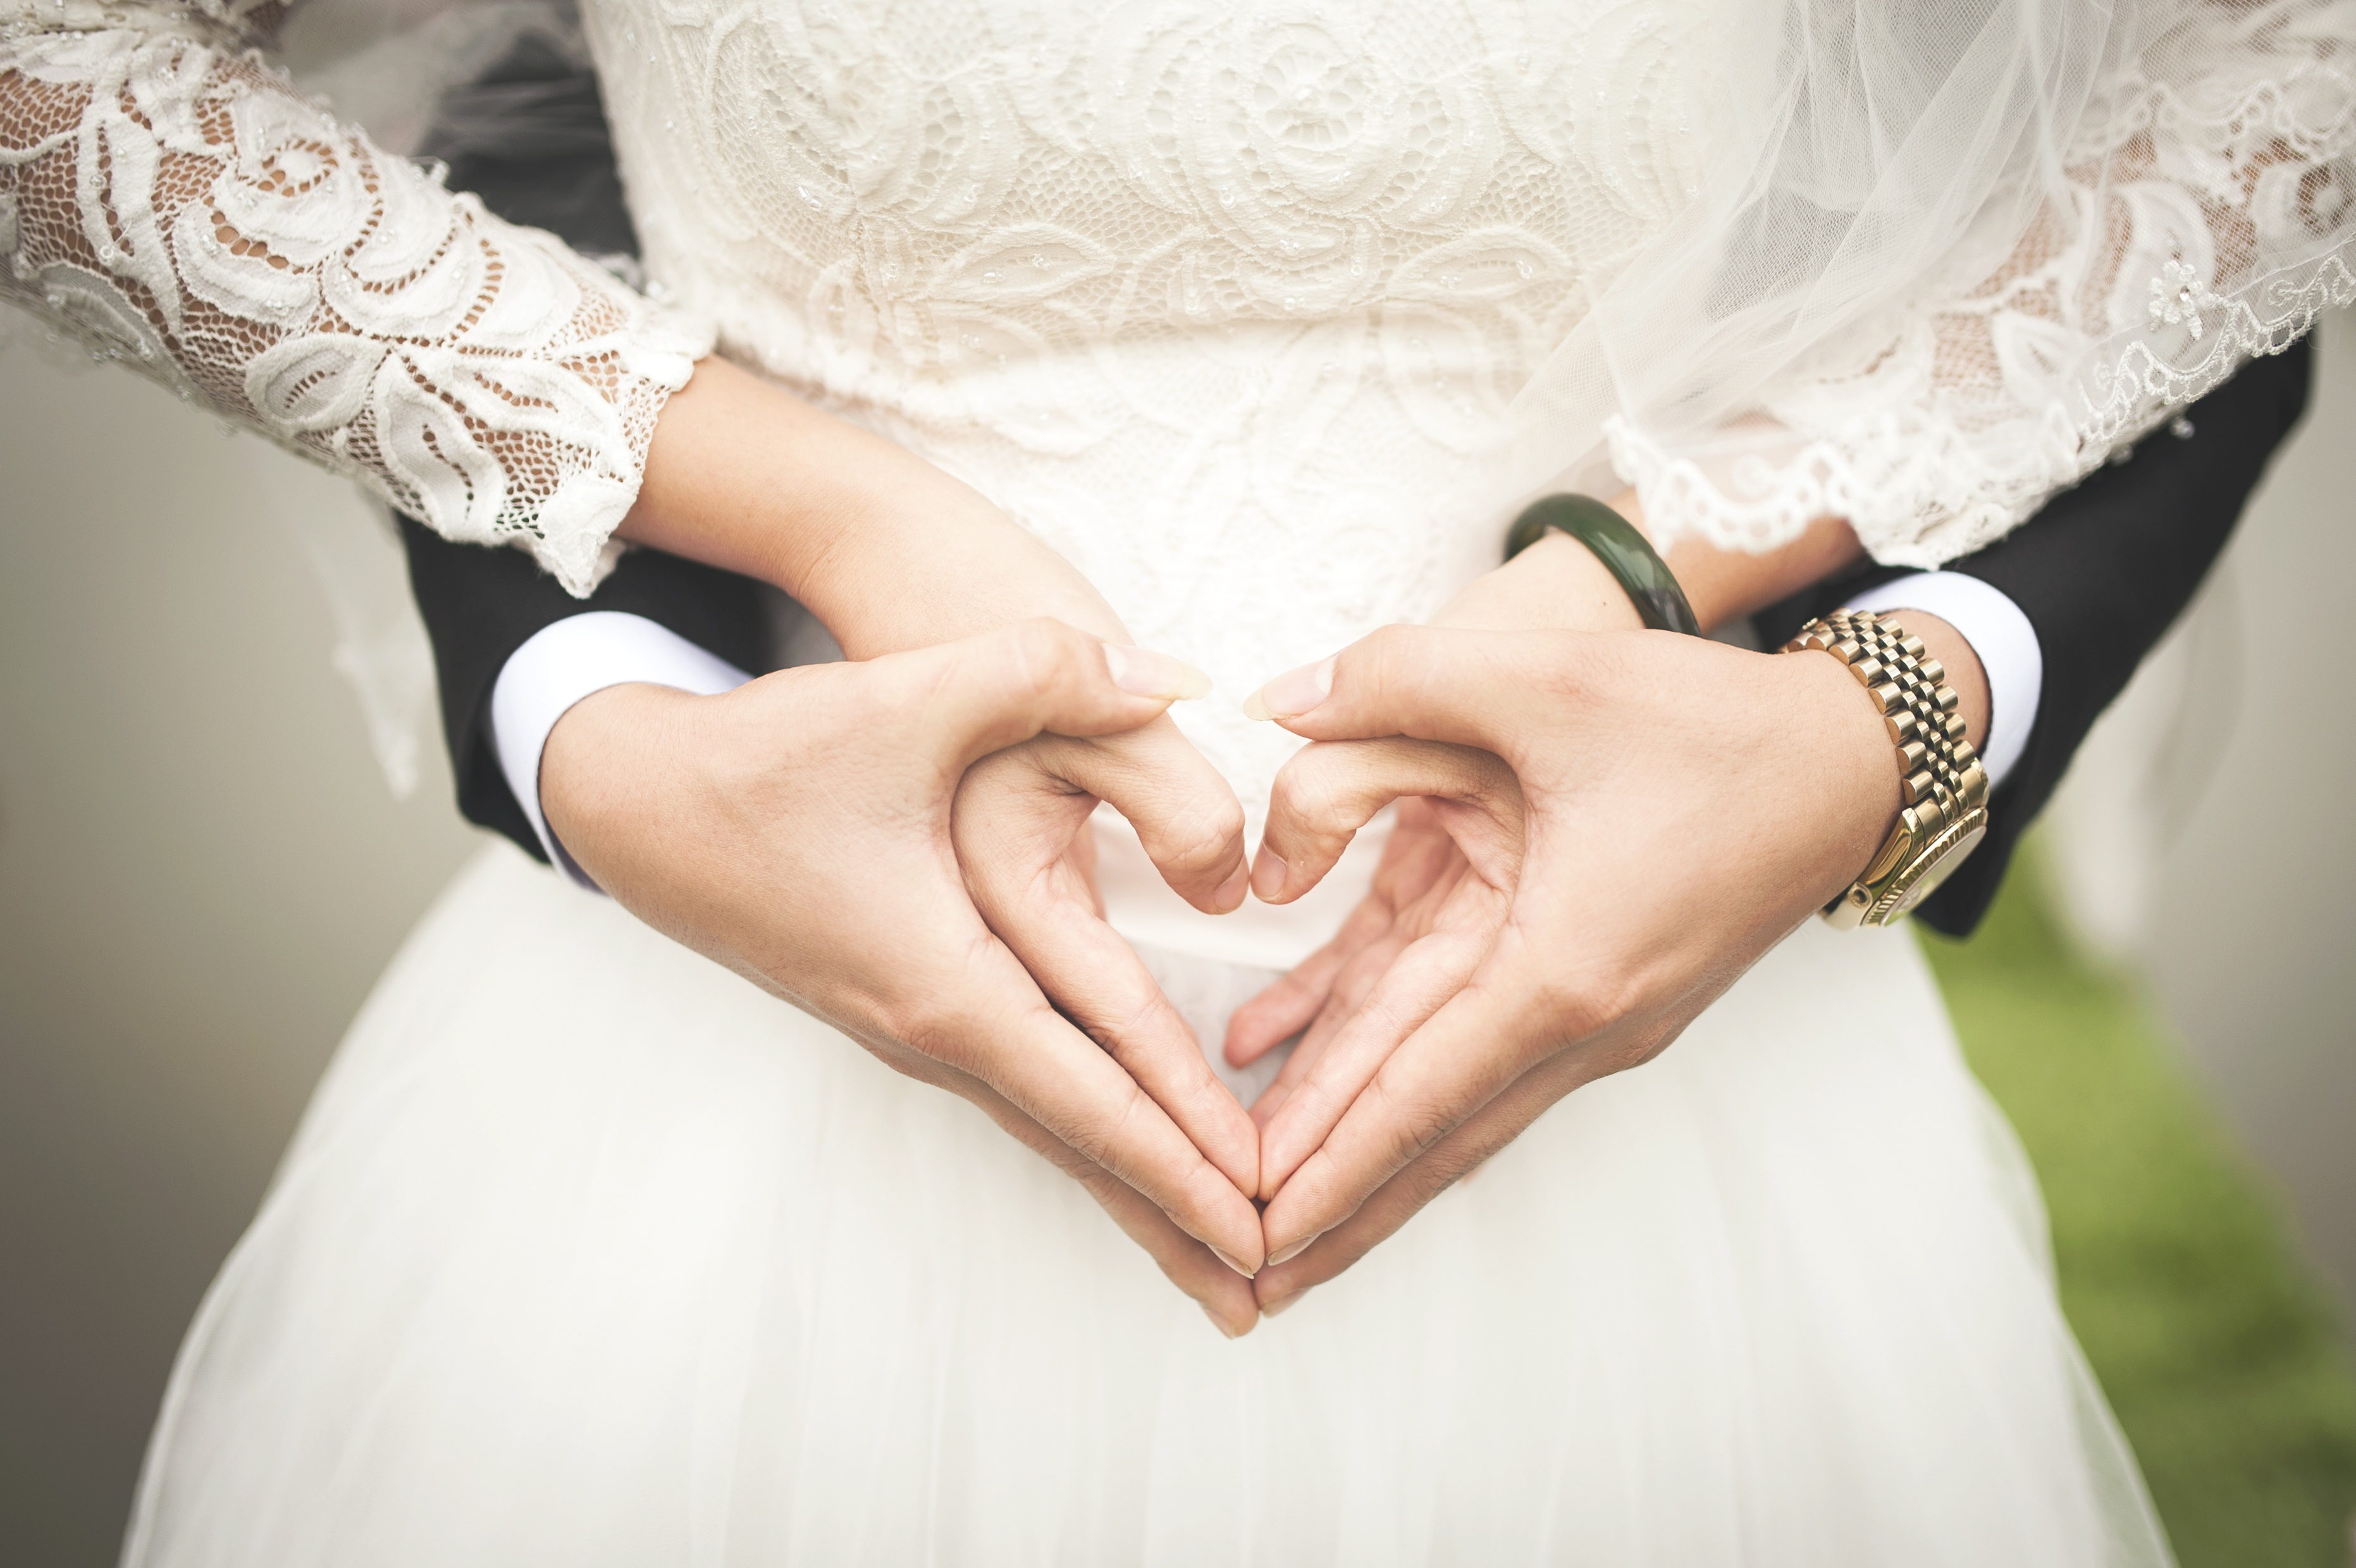 TOP 5 TUESDAY: Things I've learned while planning my wedding, Sugar & Spice